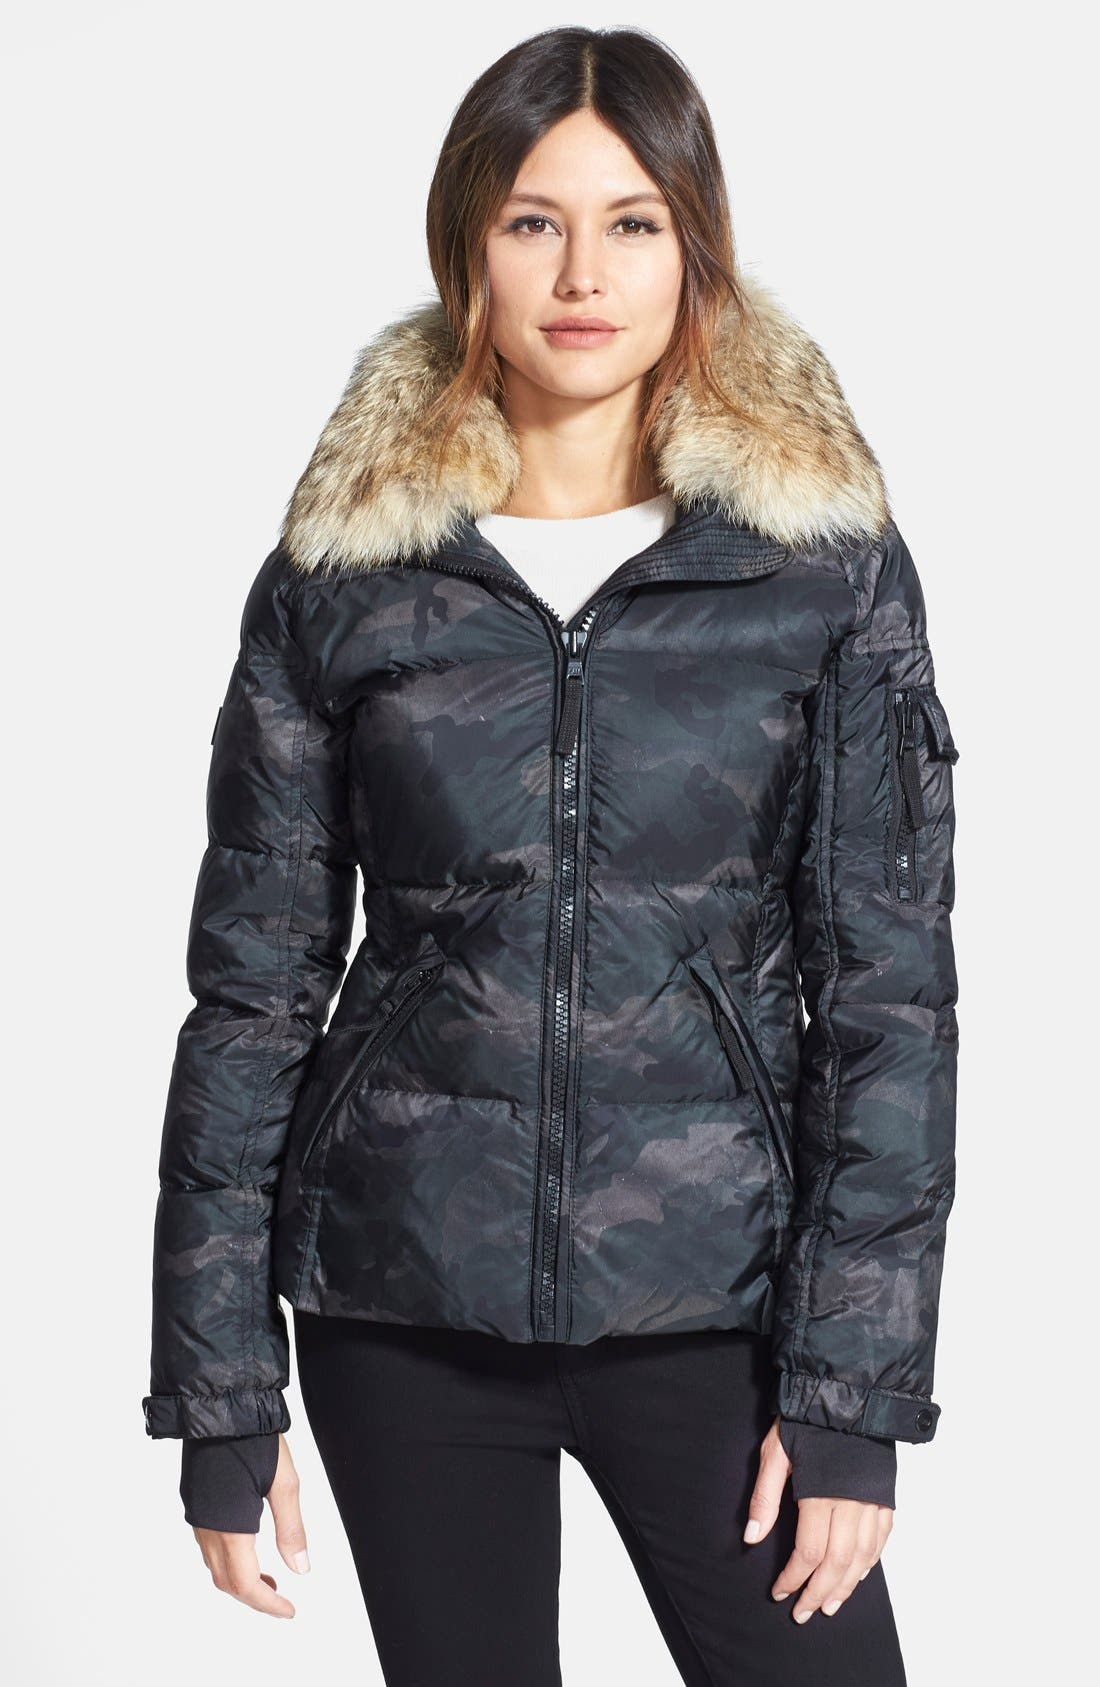 SAM. 'Freestyle' Camo Goose Down Jacket with Genuine Coyote Fur Collar,                             Main thumbnail 1, color,                             300